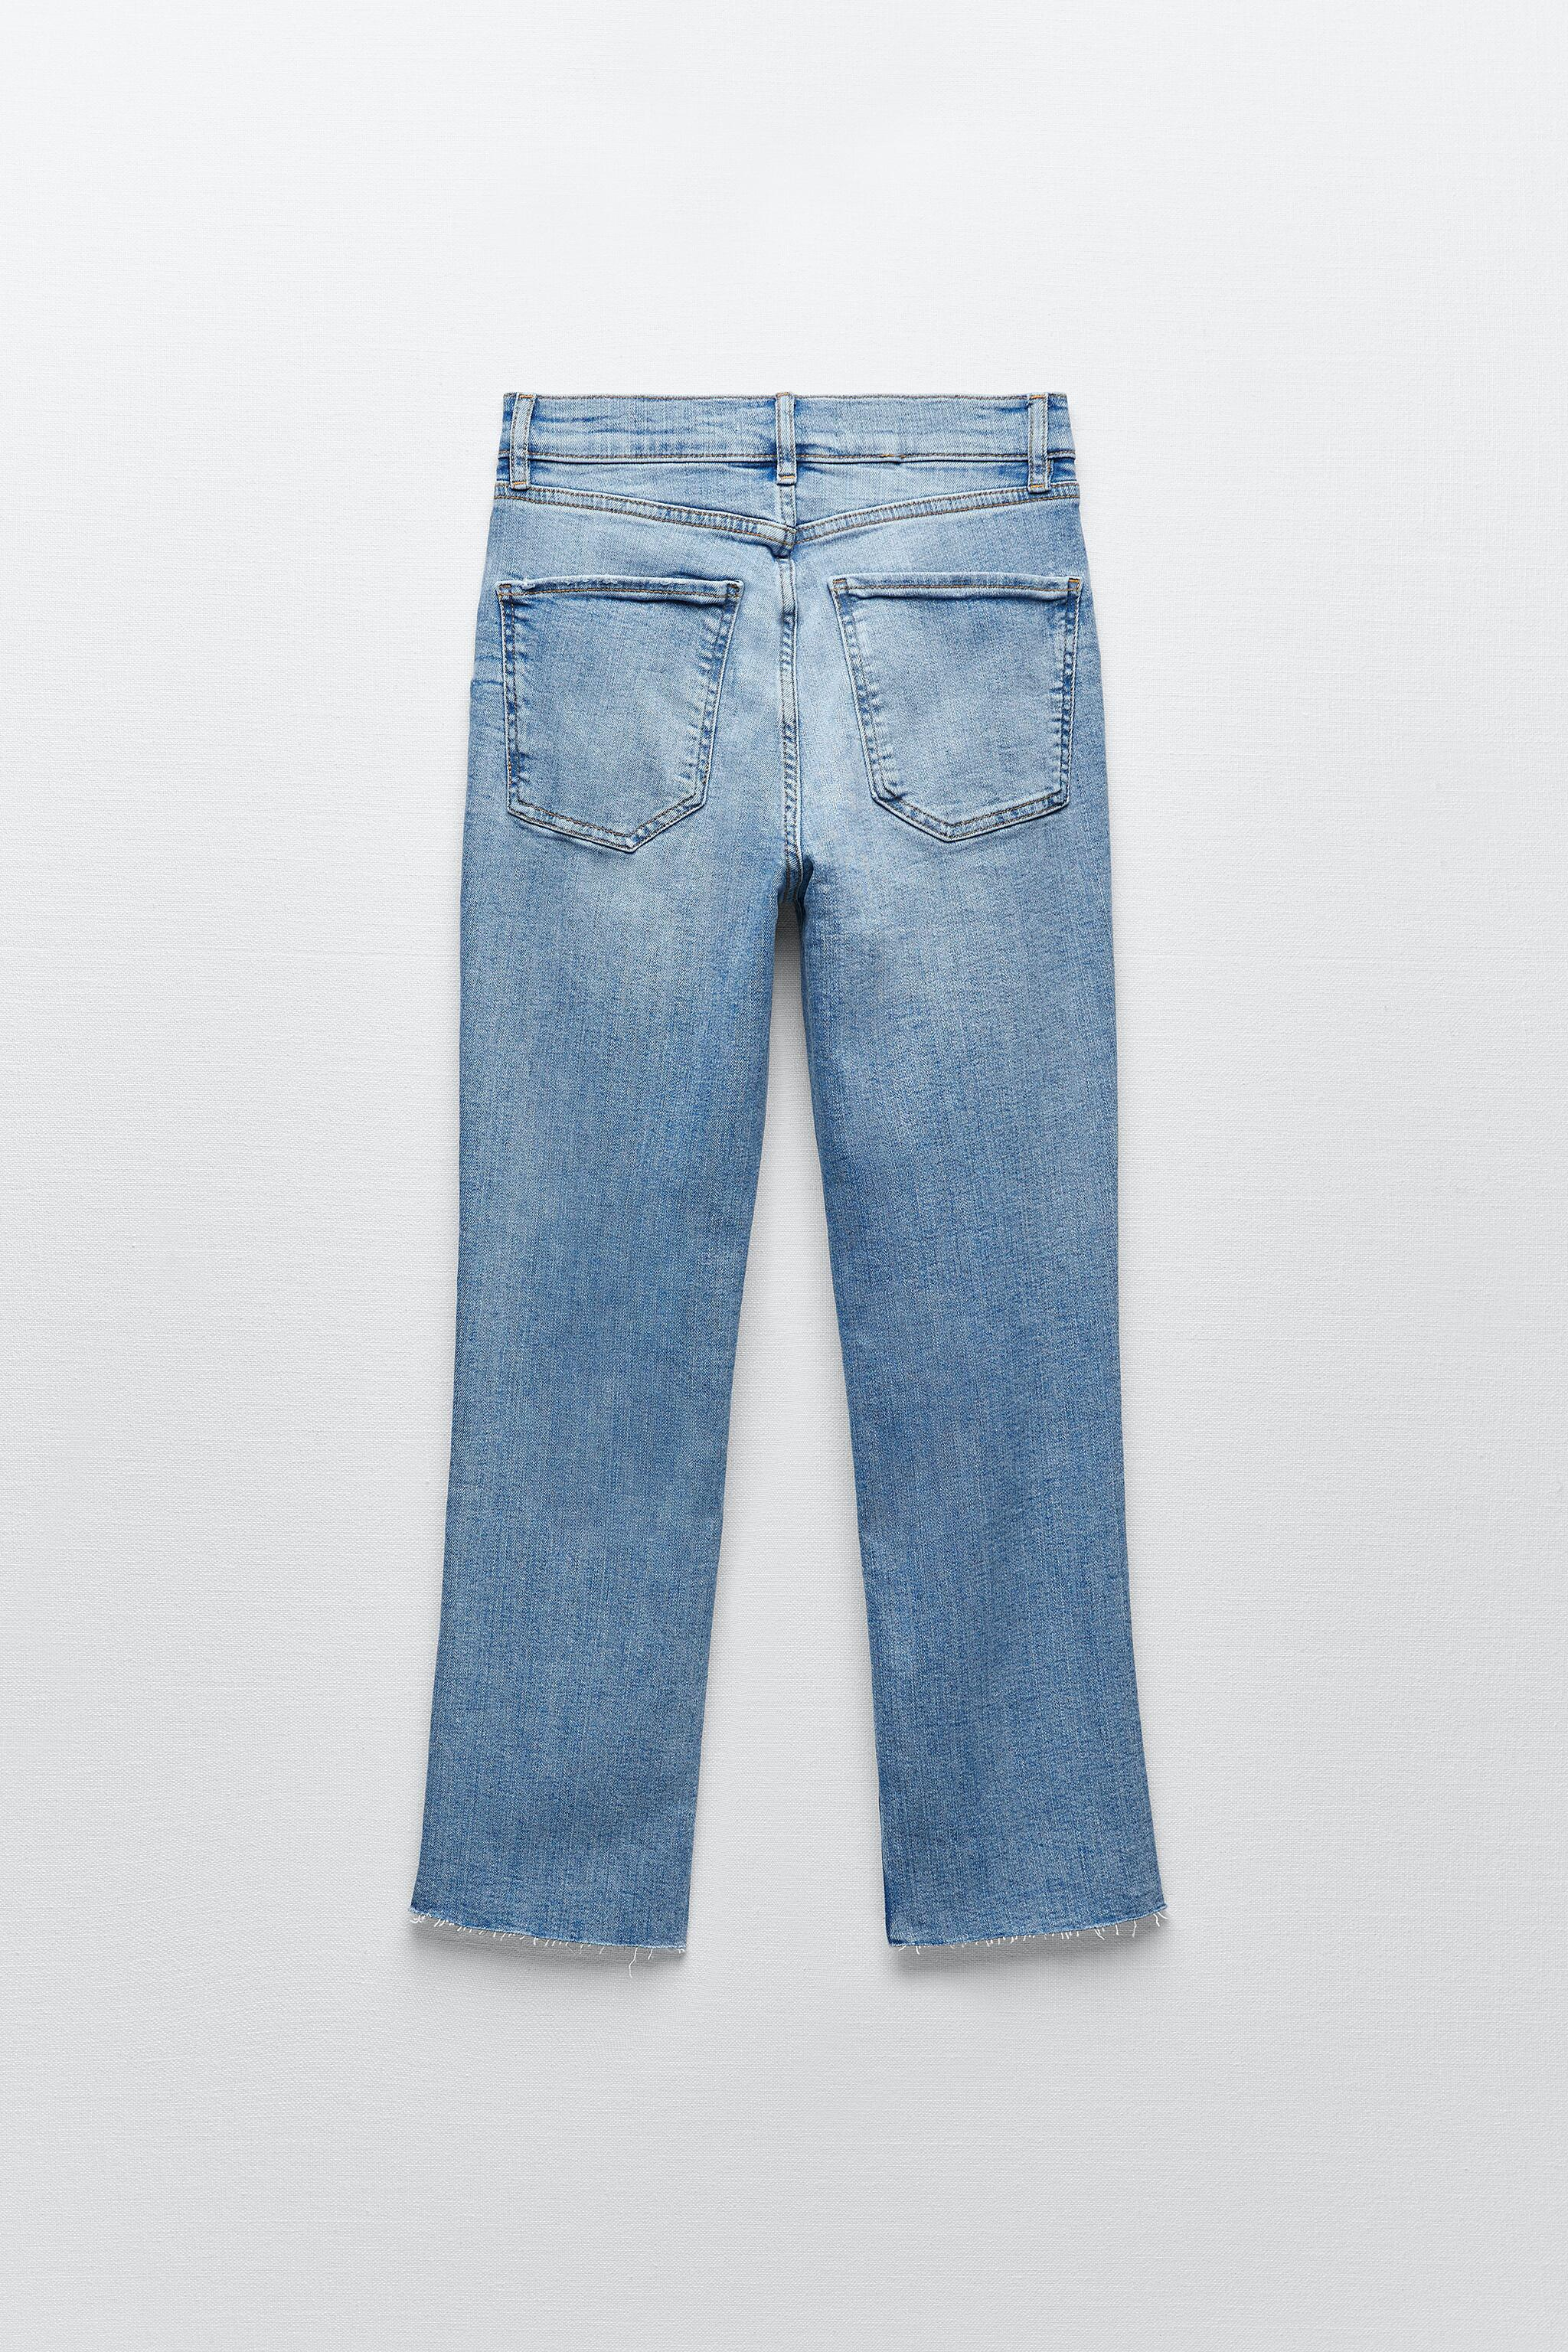 ZW THE DREED FLARE JEANS 7